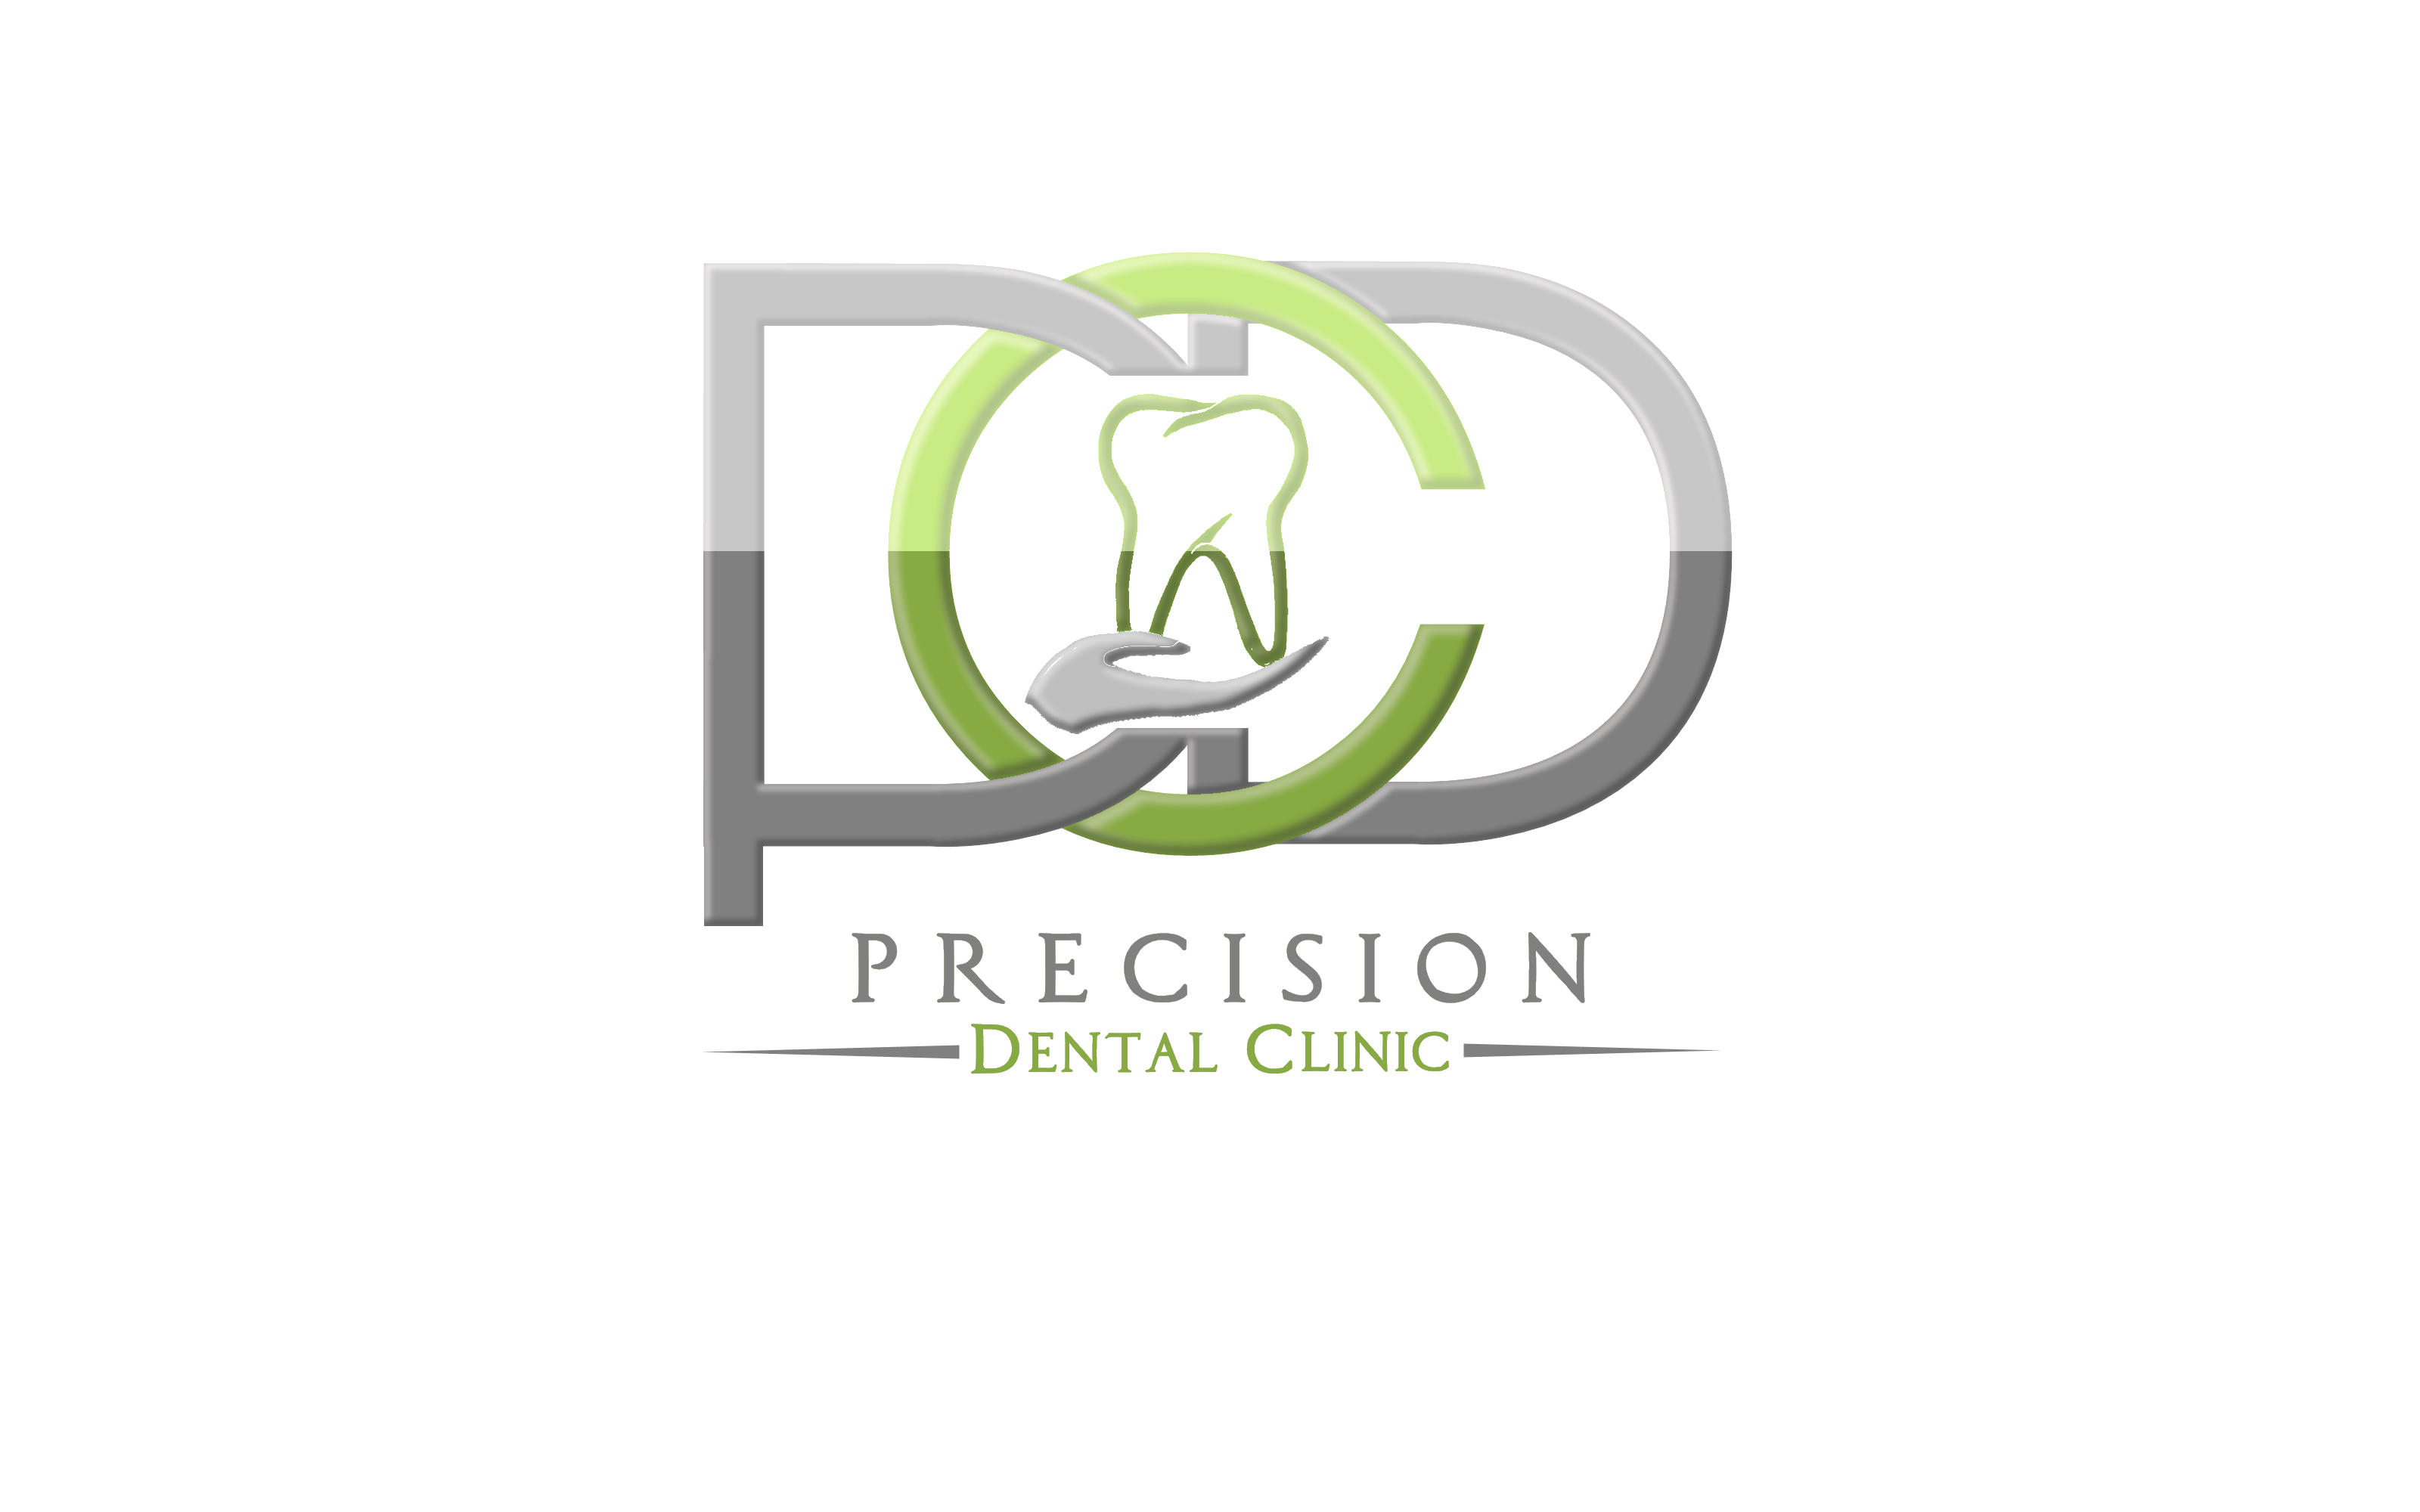 Logo Design by Roberto Bassi - Entry No. 131 in the Logo Design Contest Captivating Logo Design for Precision Dental Clinic.